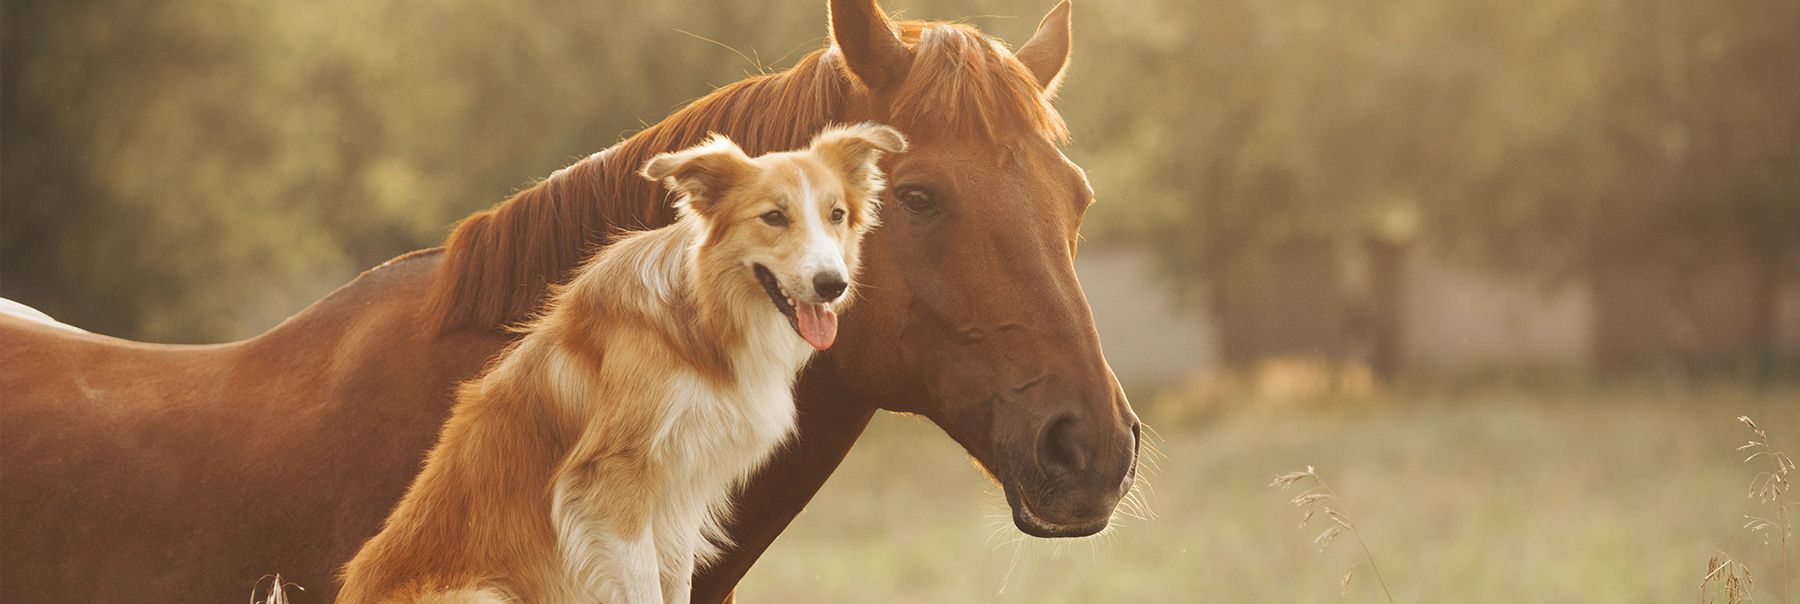 Supplementing Your Horse with Glucosamine and MSM…Use with Caution